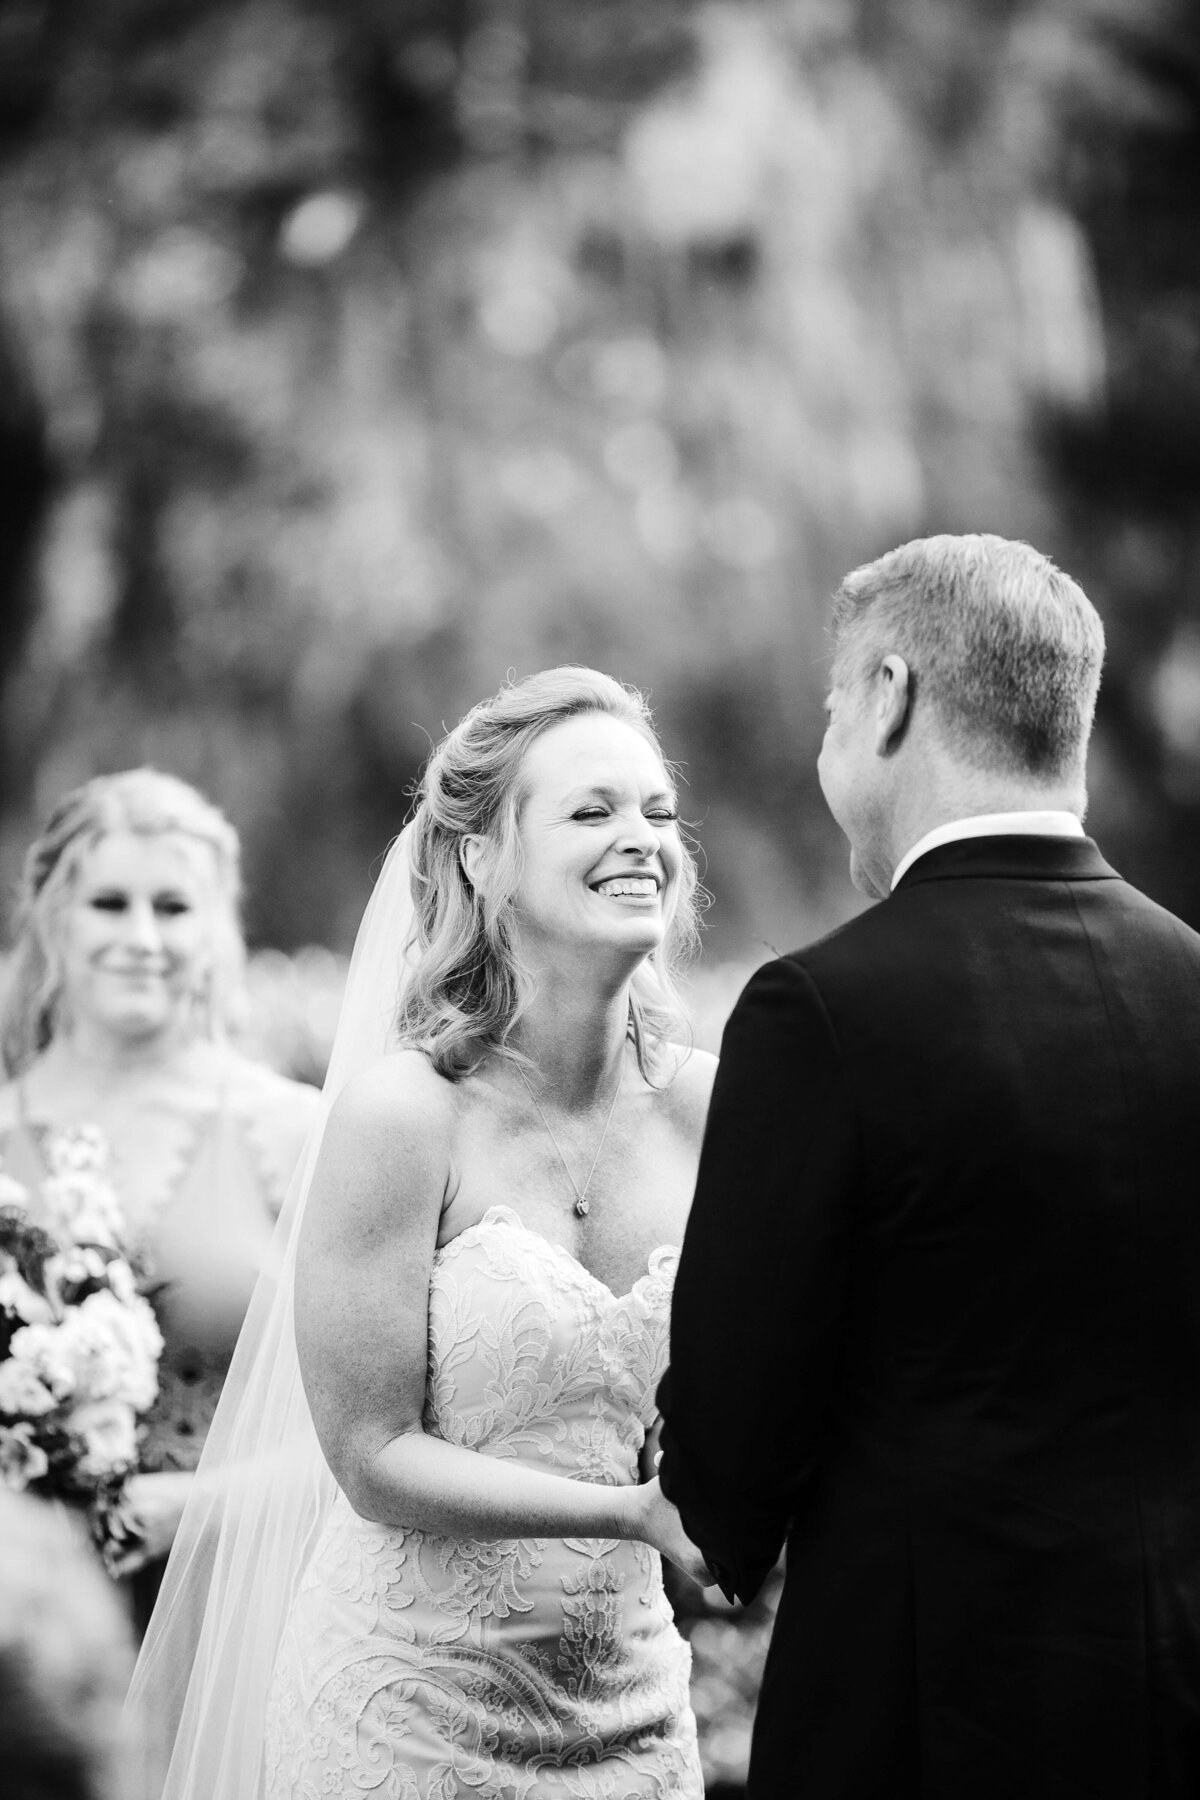 Lauren and Rob's romantic wedding at The Ford Plantation